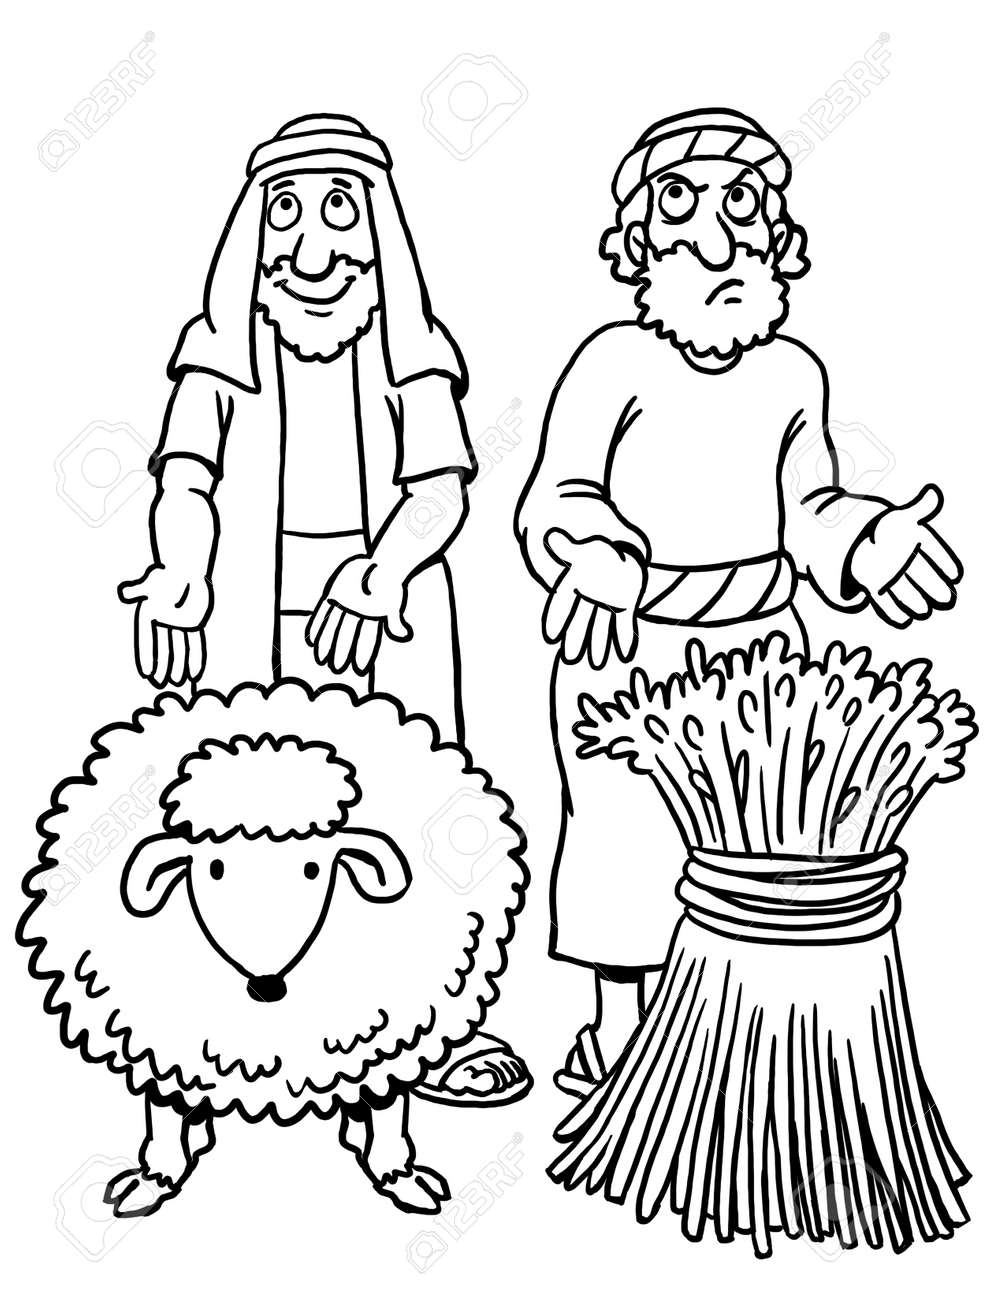 Coloring Page Of Cain And Abel Stock Photo Picture And Royalty Free Image Image 125684848